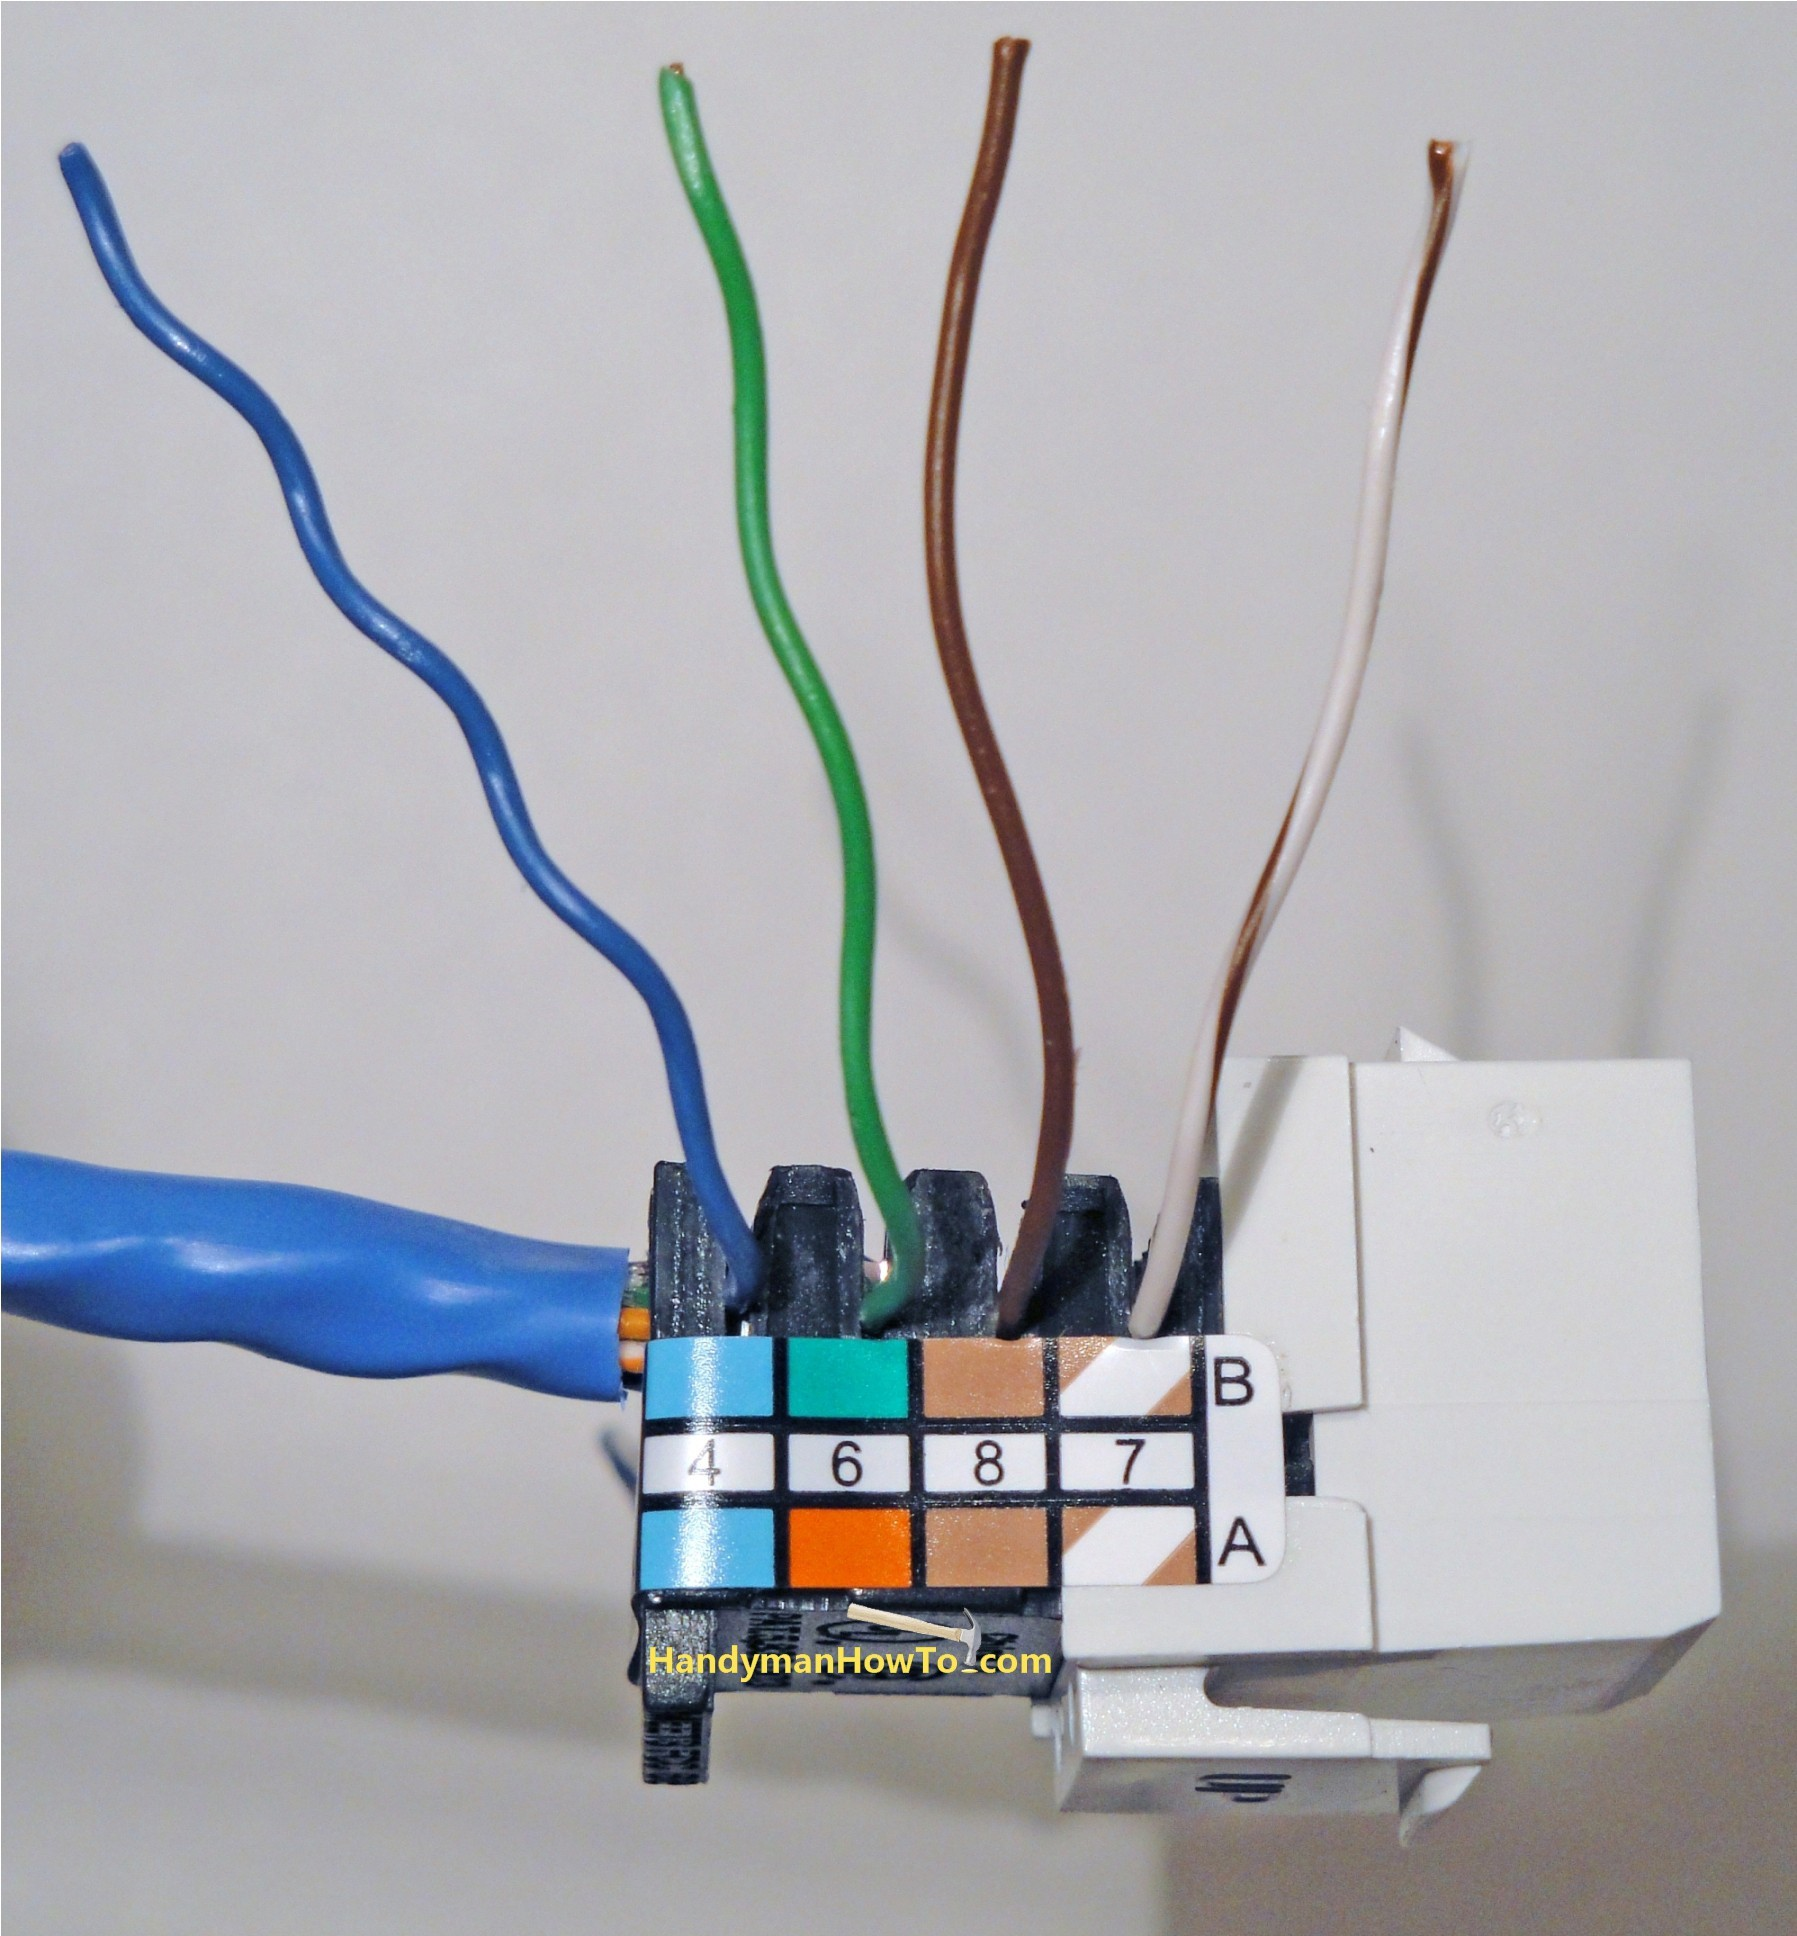 Wiring Diagram for Phone Jack Fresh Exelent Dsl Wiring Phone Jack ornament the Wire Magnoxfo